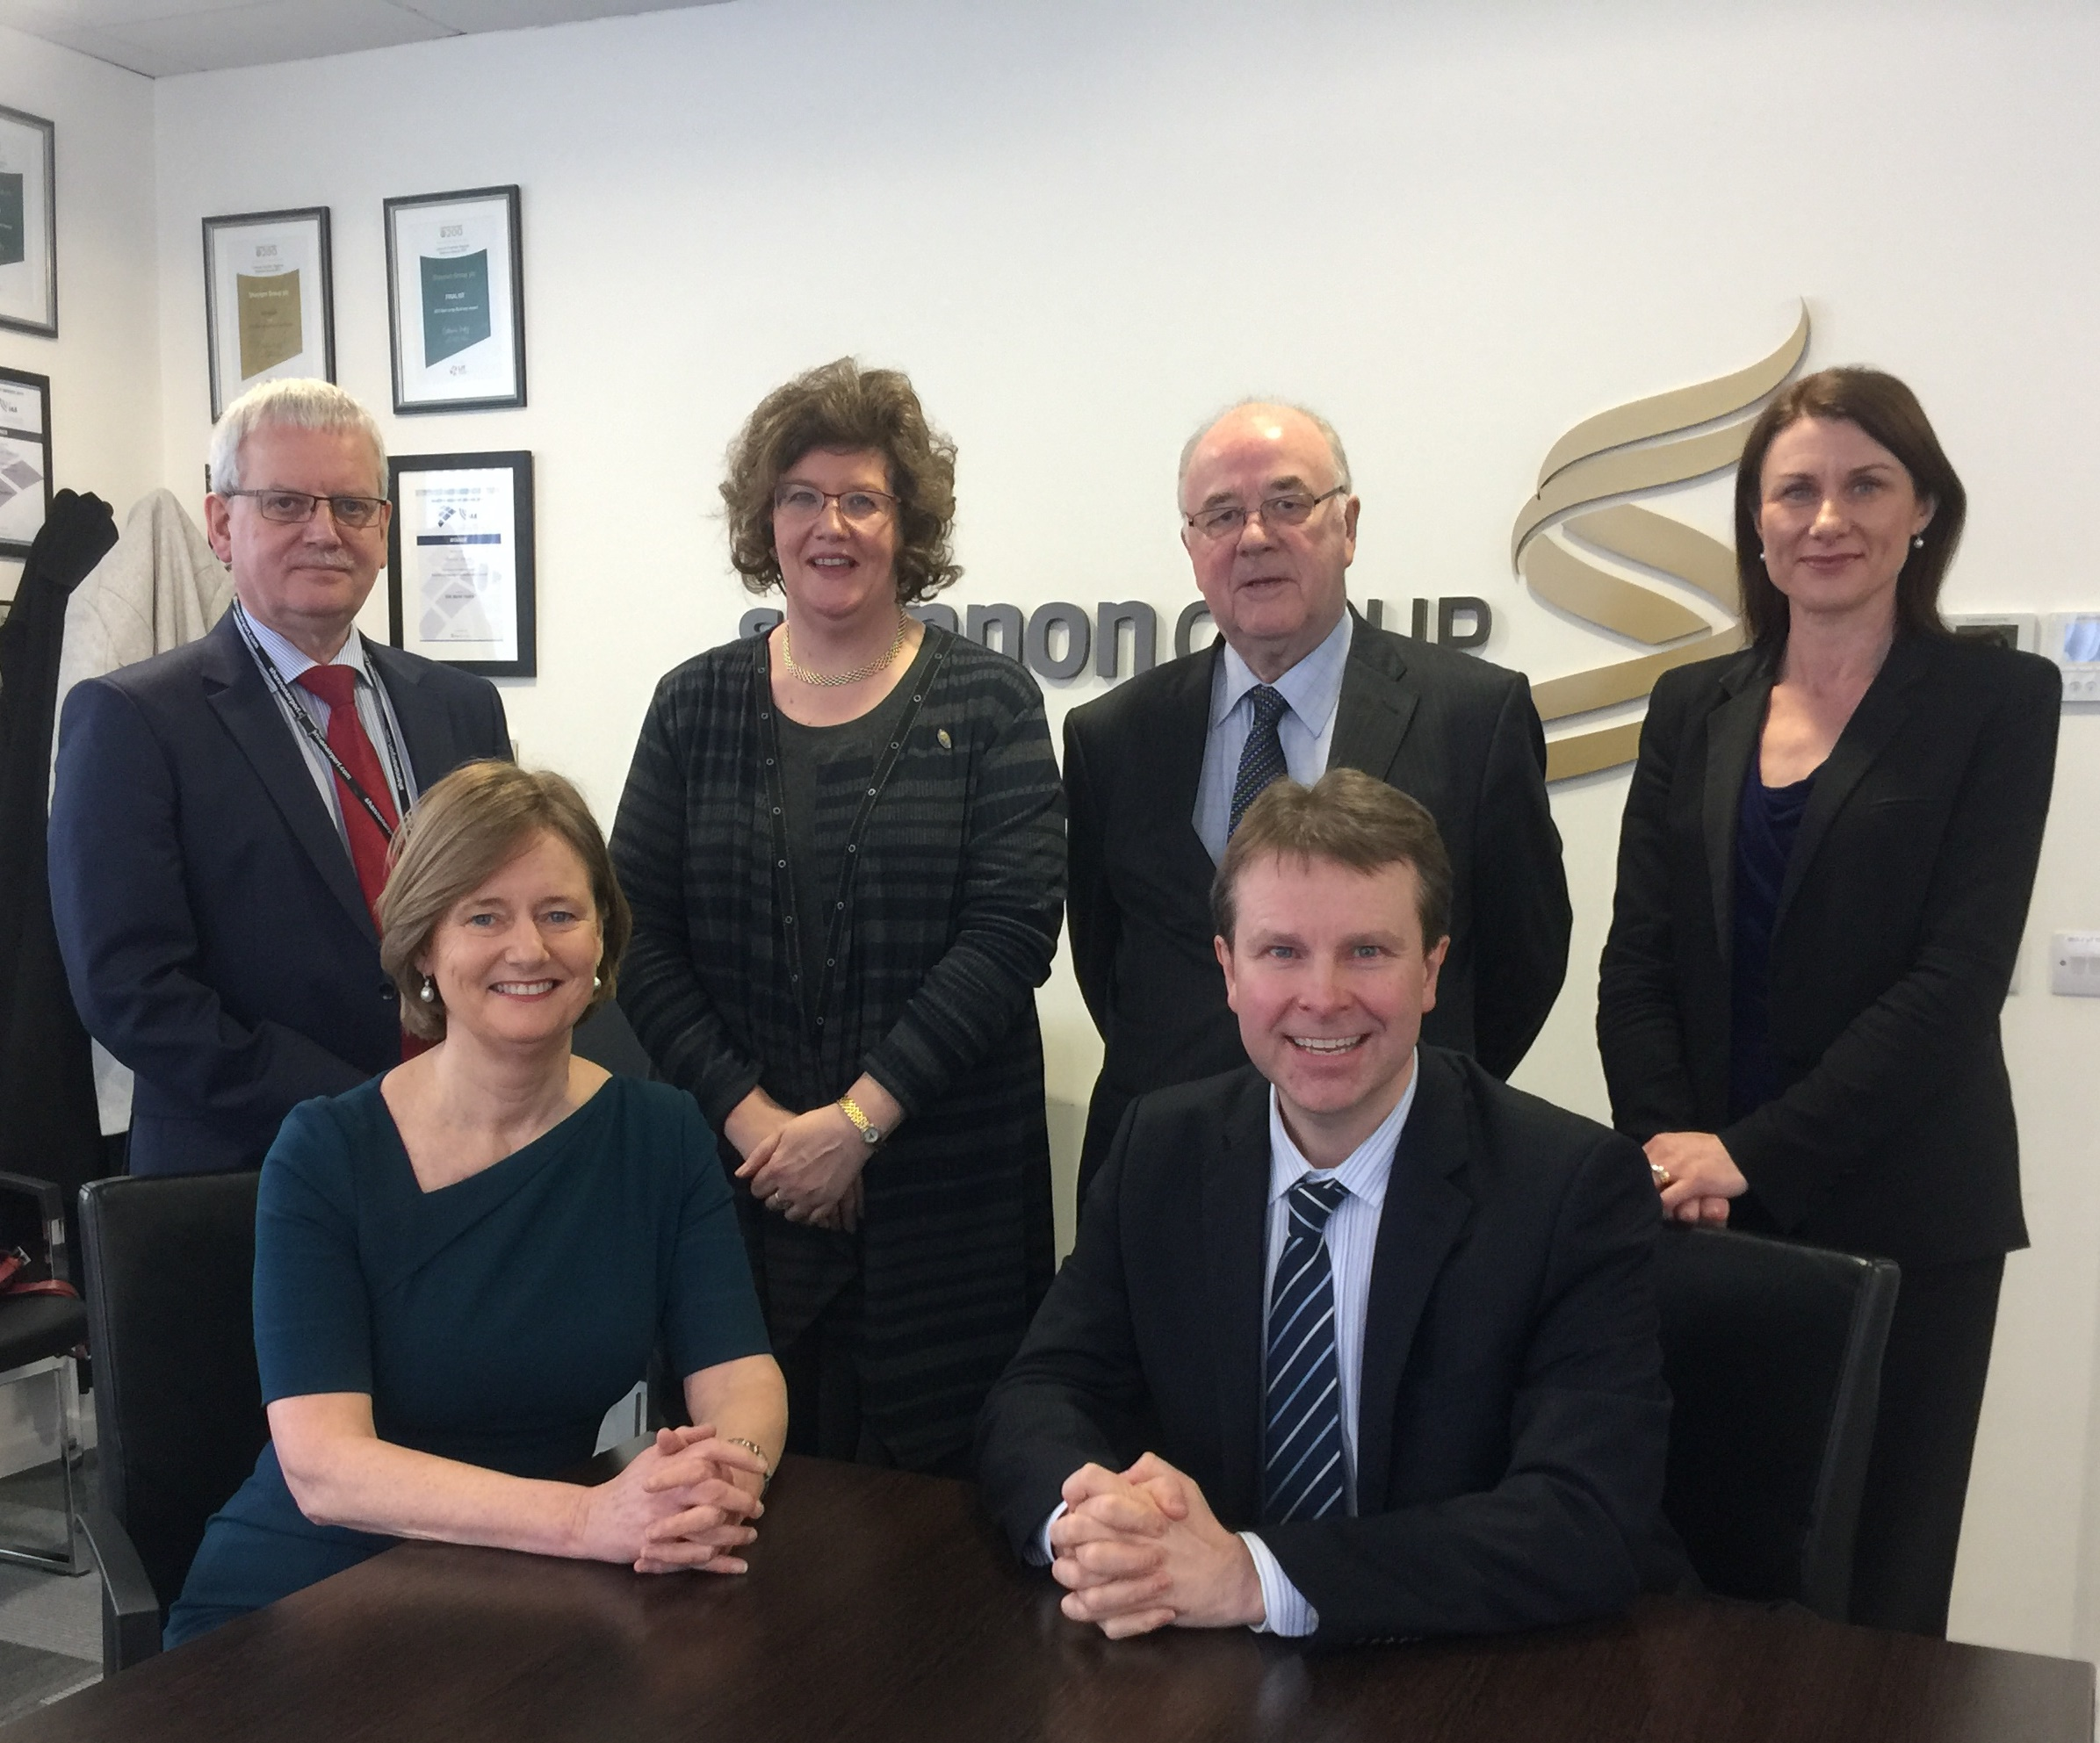 met with the CEO and board members of Shannon Airport just before the summer to discuss my ongoing work on the European Parliament's Aviation Strategy - pictured here with Tom Coughlan, Senator Maria Byrne, Tony Brazil, Mary Considine and Matthew Thomas, CEO